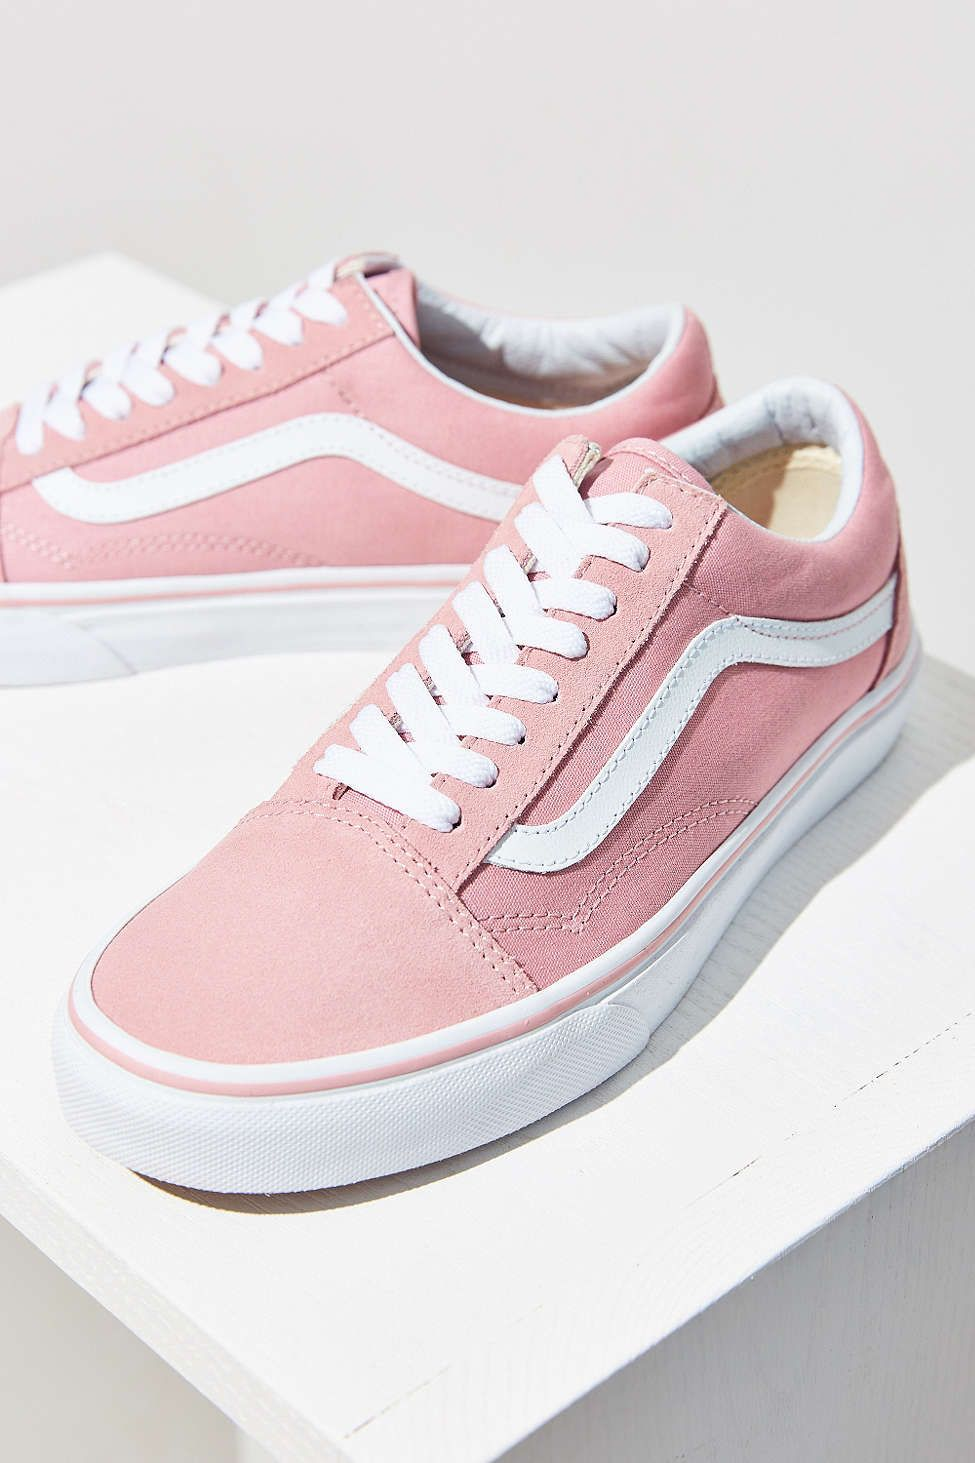 Vans Pink Old Skool Sneaker   Shoes   Pinterest   Vans  Urban     Vans Pink Old Skool Sneaker